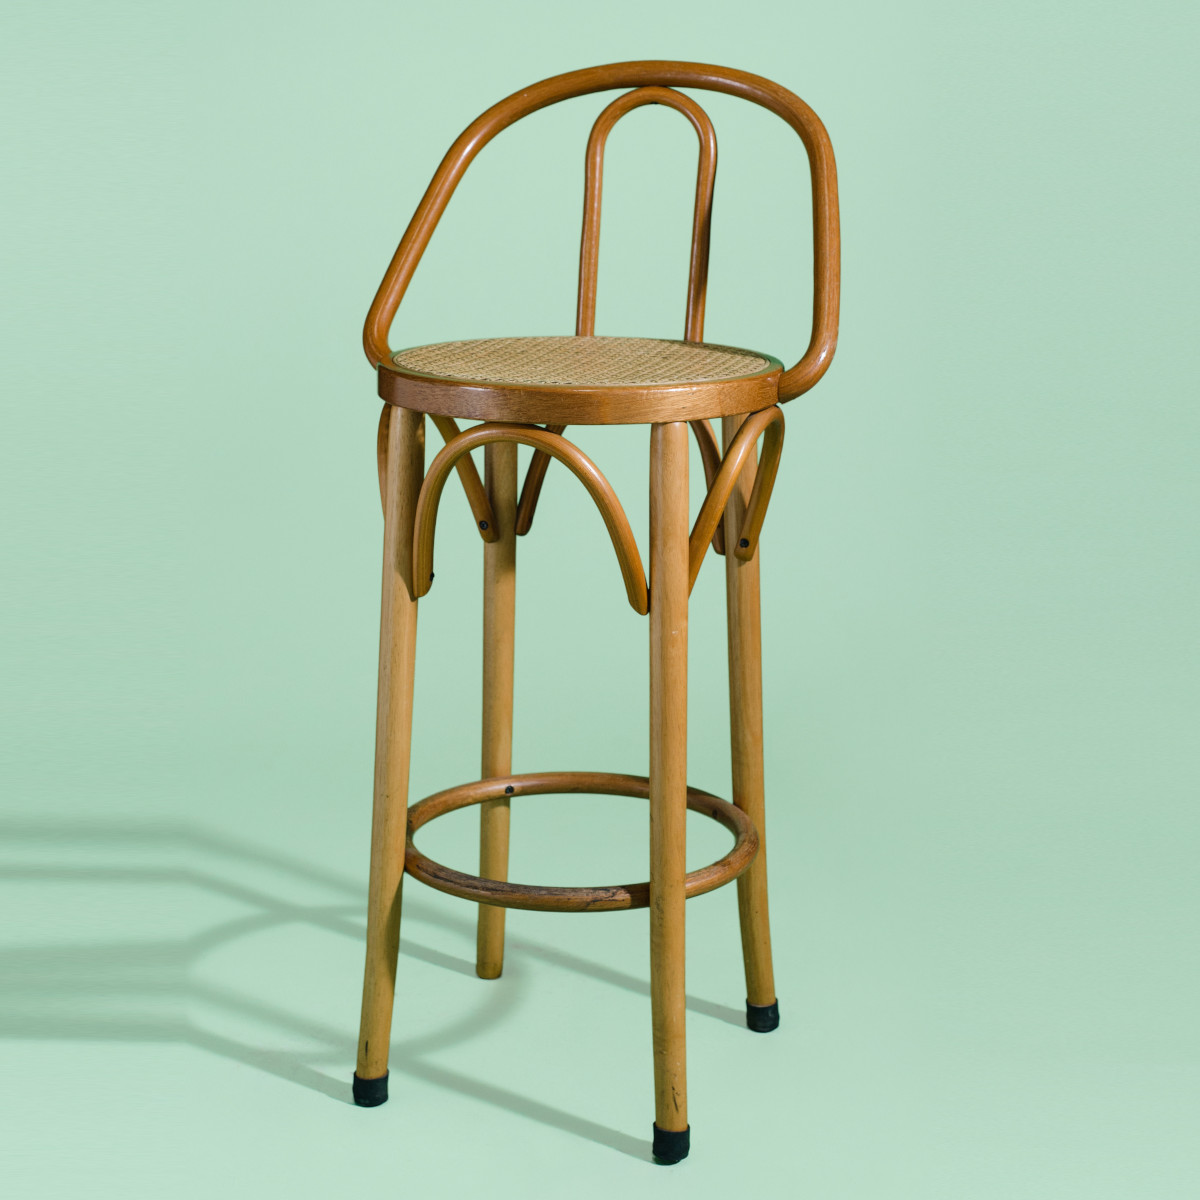 BA006-Bentwood Bar Stool